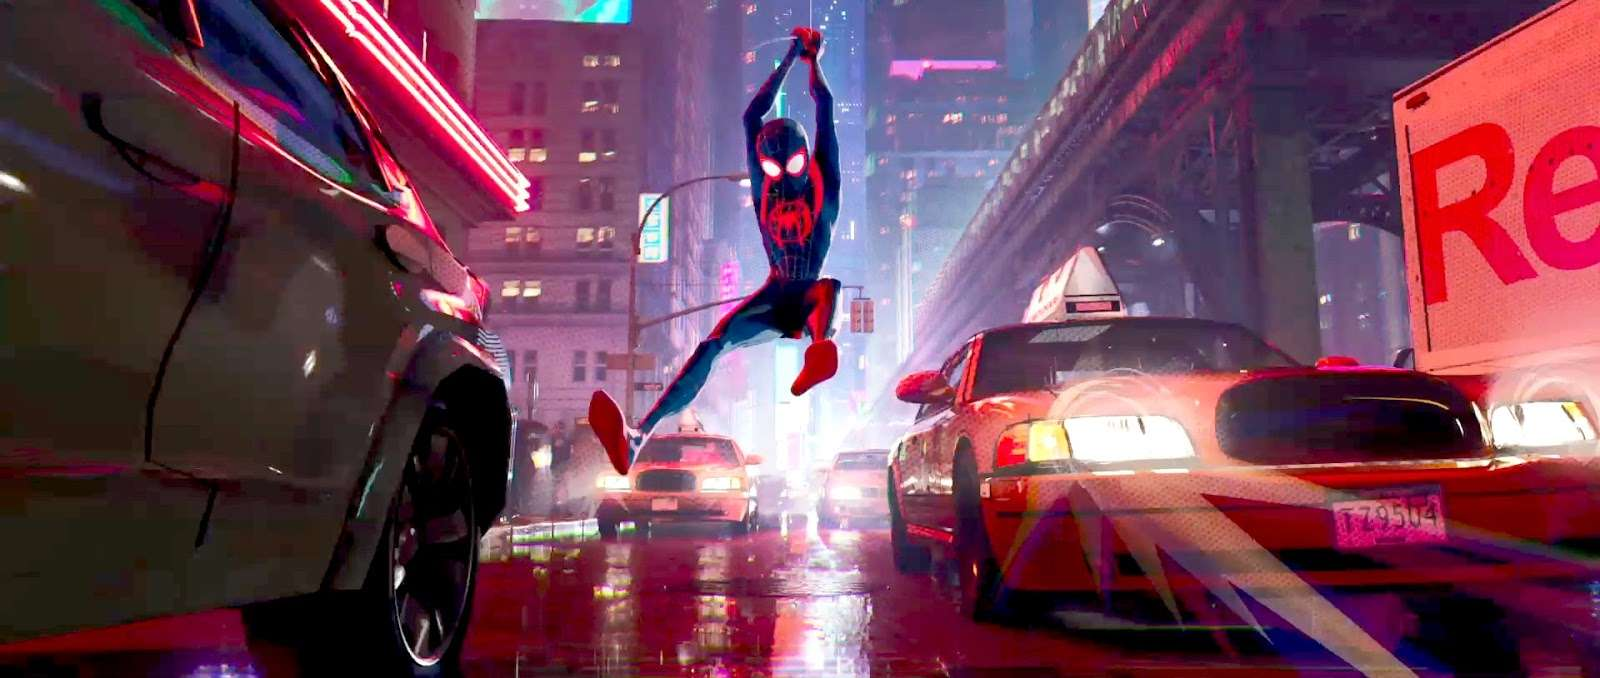 Spider-Man: Into The Spider-Verse - Best Movies To Watch At Home While Quarantined